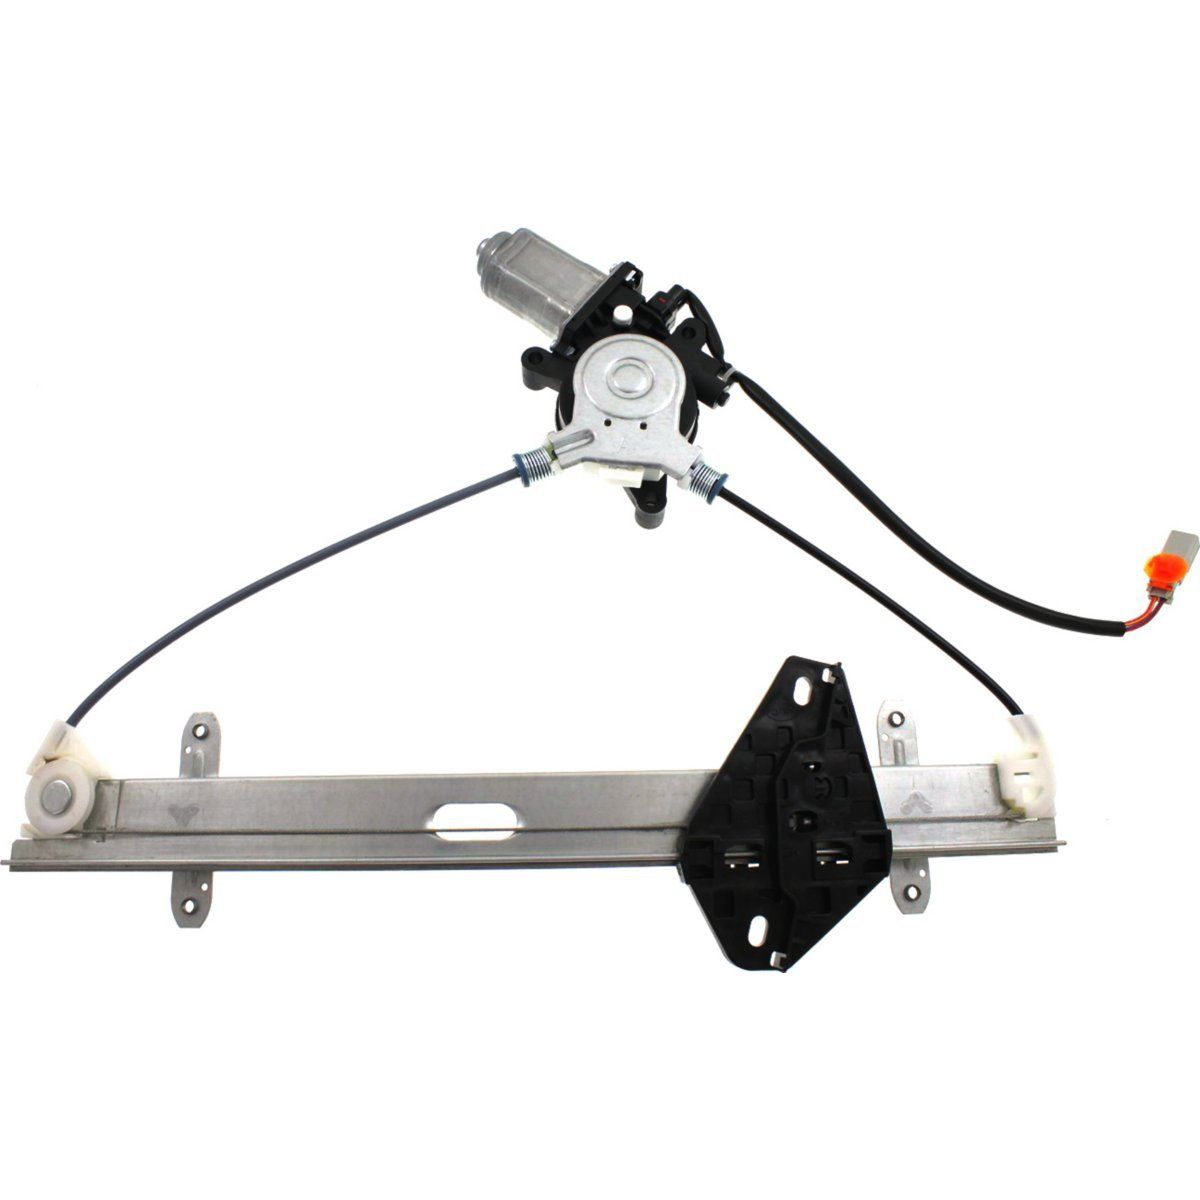 Power Window Regulator For 2002-2006 Acura RSX Front